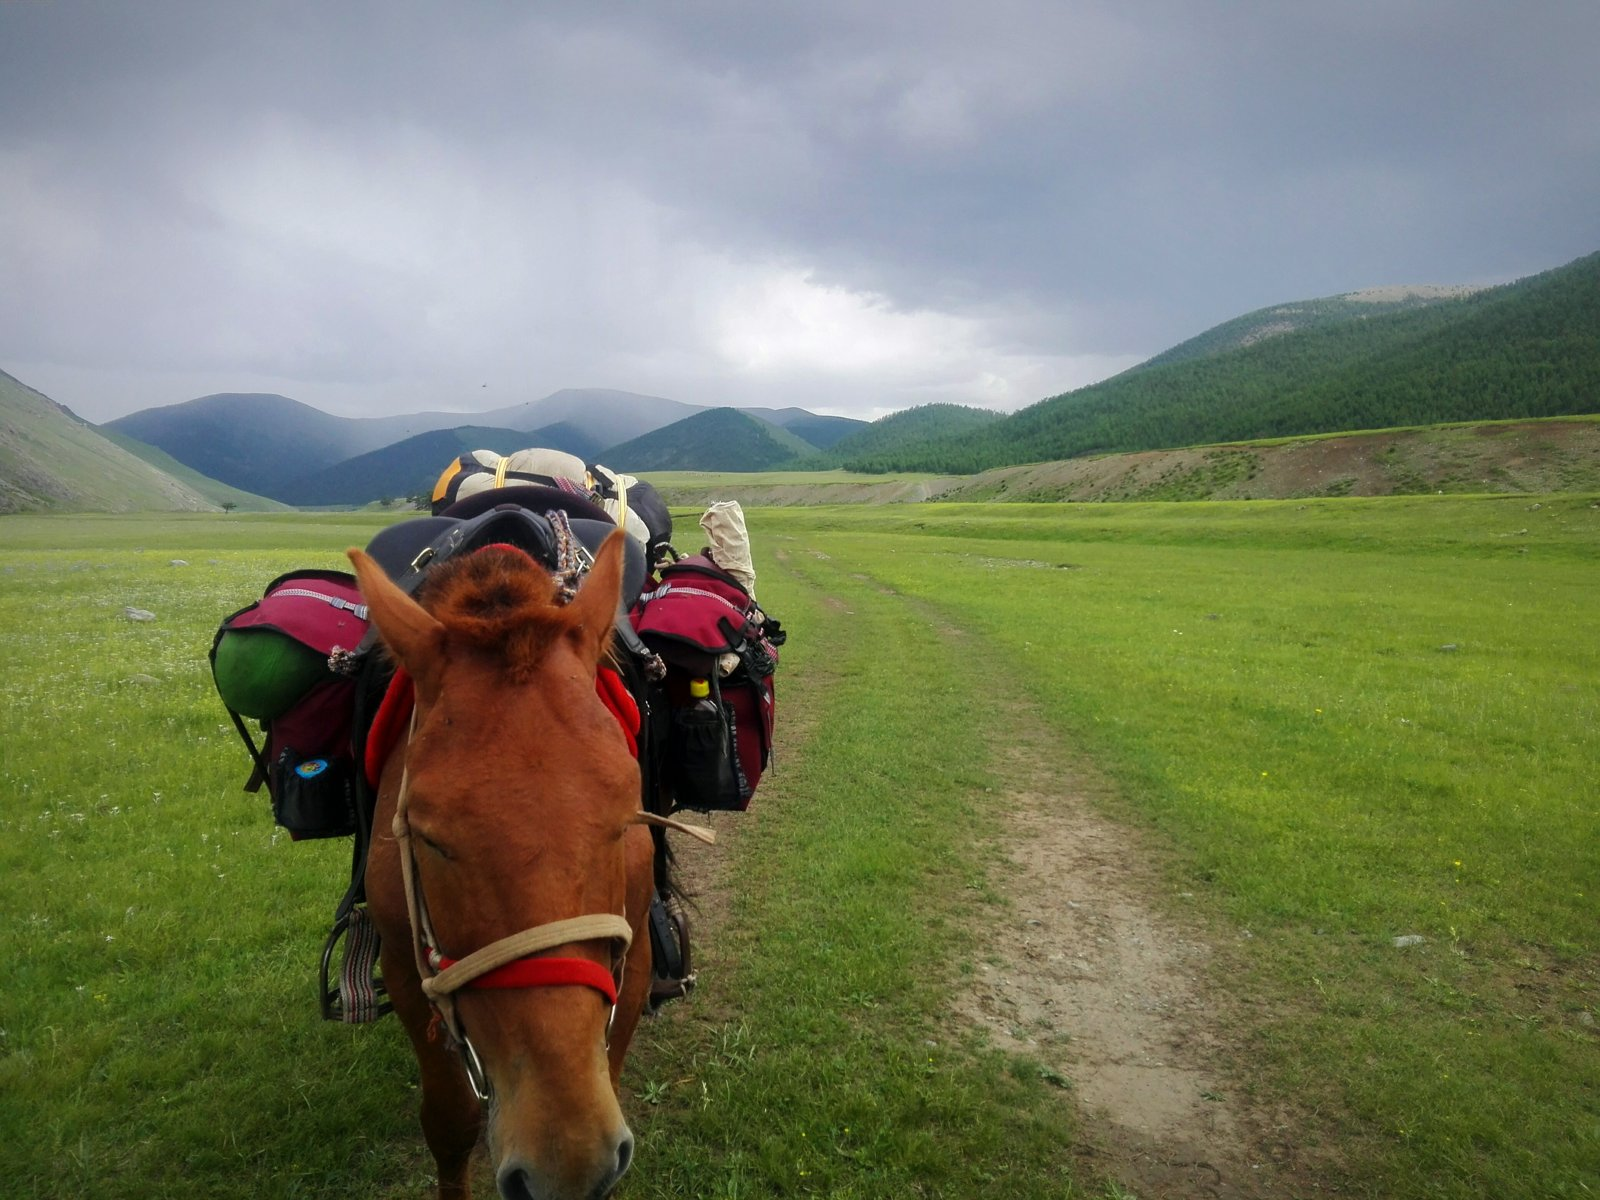 img_20160710_213325-jpg.31995_Polvo the Mongolian Horse_Furry Nomads_Squat the Planet_{posttime}